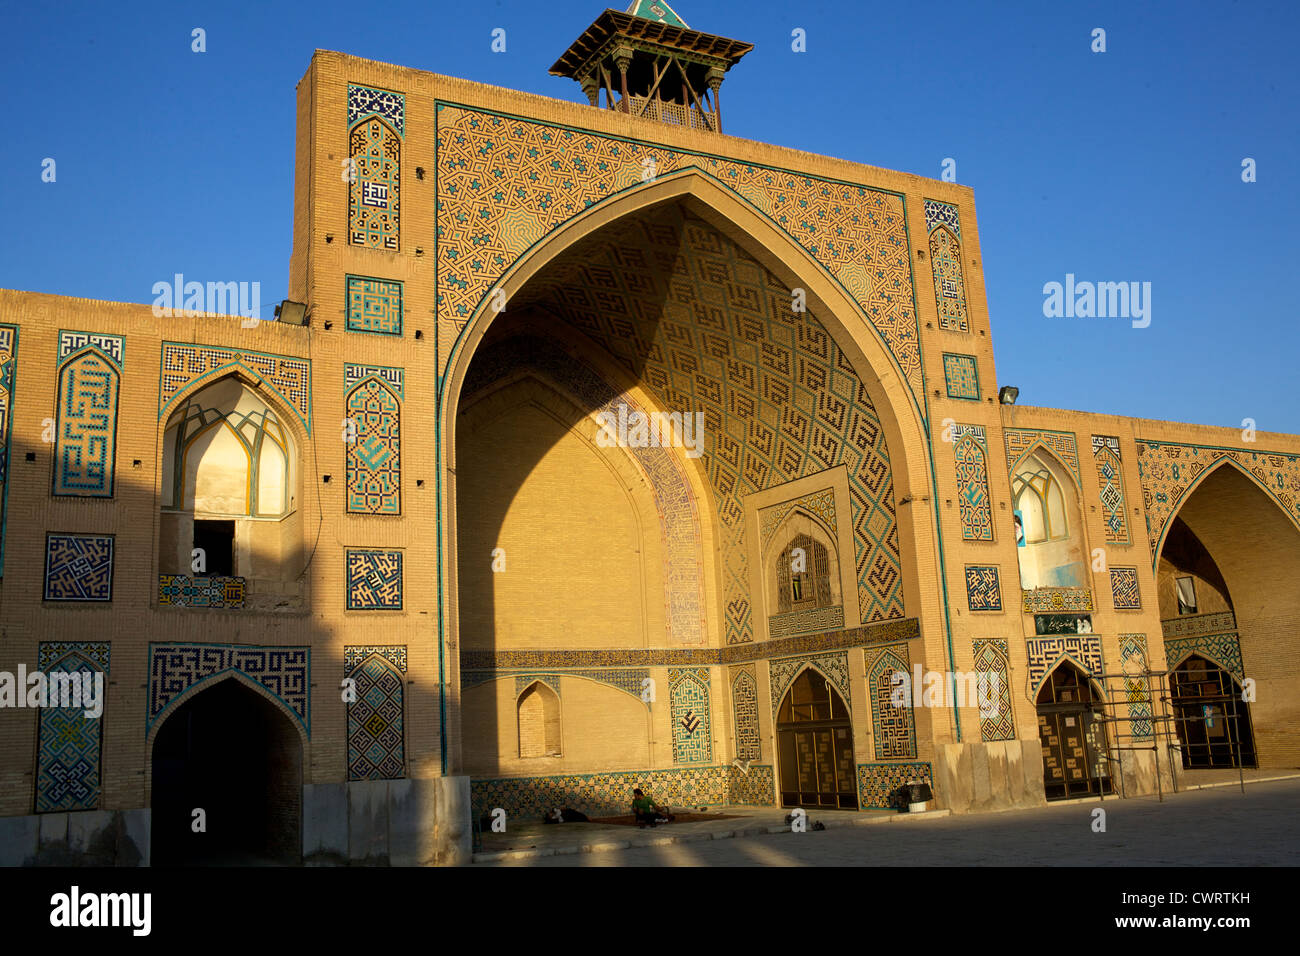 Sightseeing on the Mosque Gigantic  of Isfahan - Stock Image